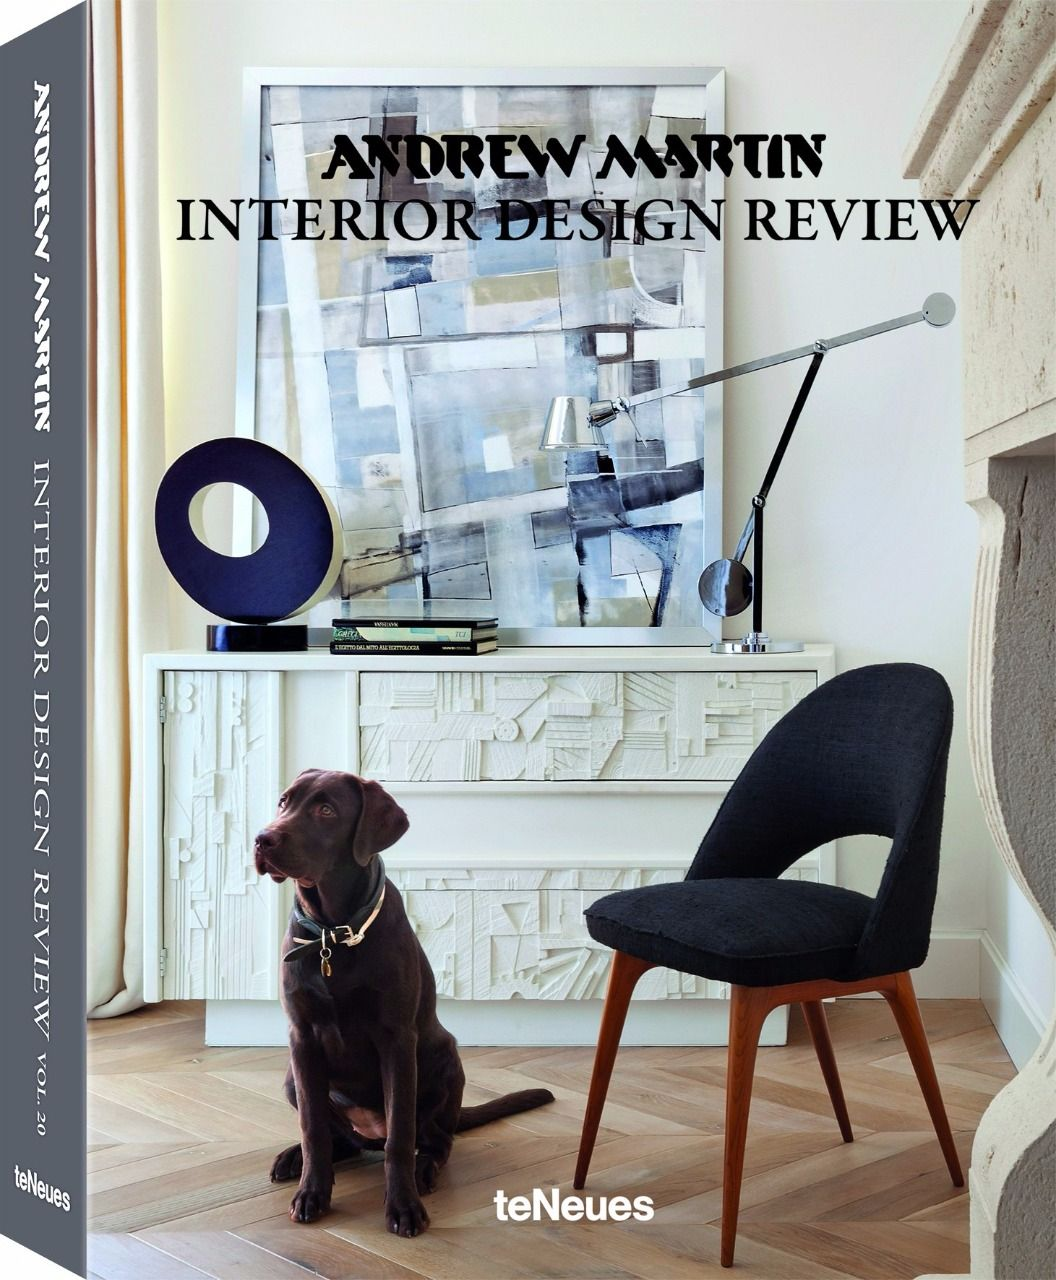 Good LW PRESS | Andrew Martin Interior Design Review 2016   Louise Walsh Interior  Design Featured Project